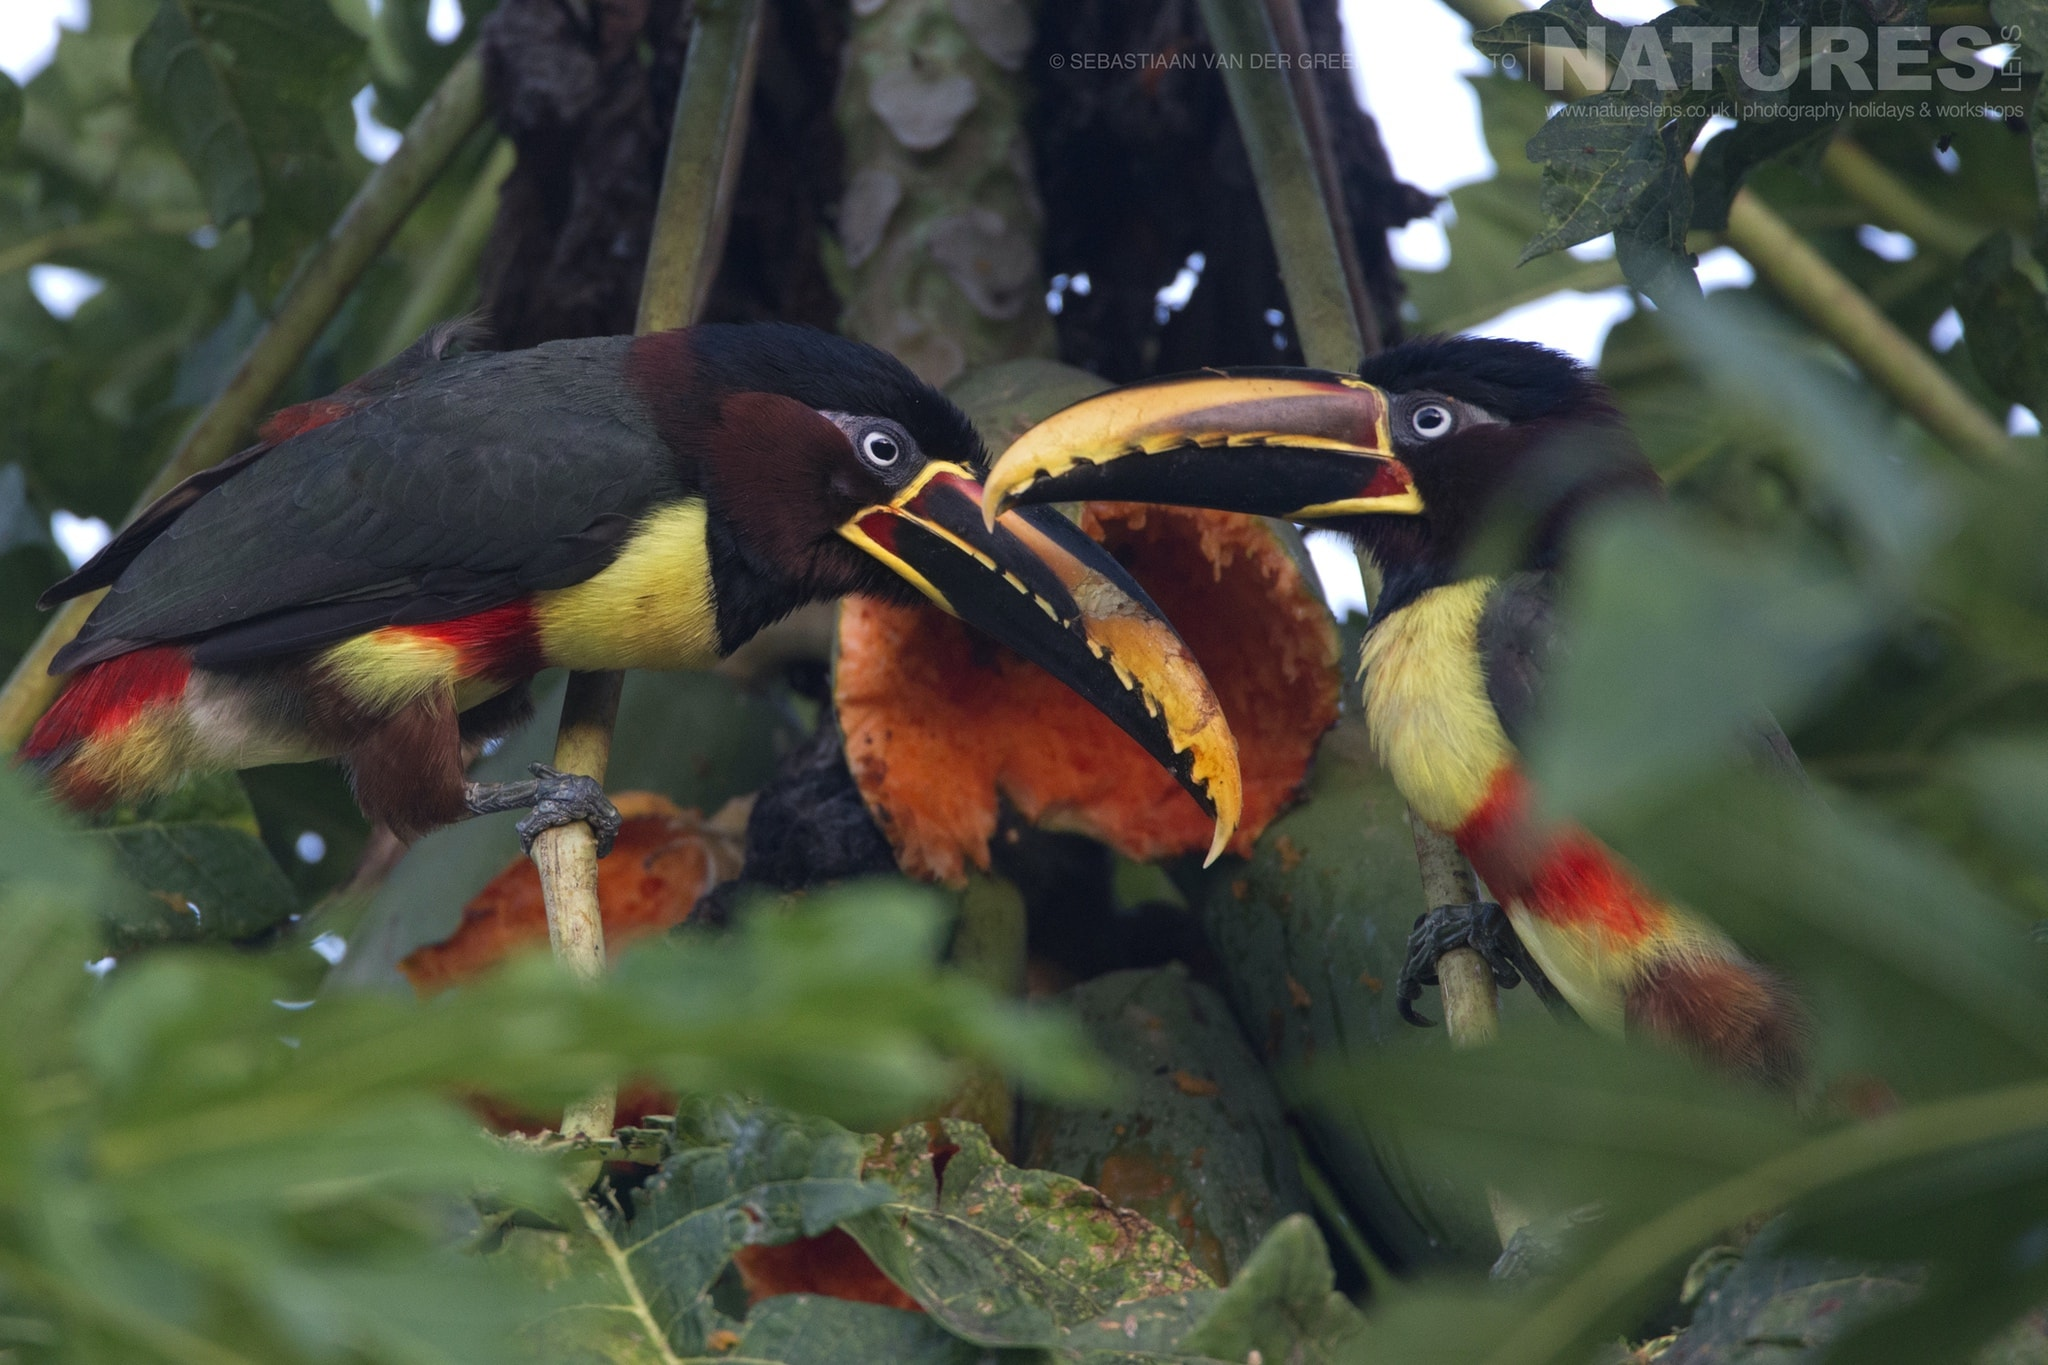 A pair of Aracari photographed in the locations used for the NaturesLens Wildlife of Brazil's Pantanal Photography Holiday